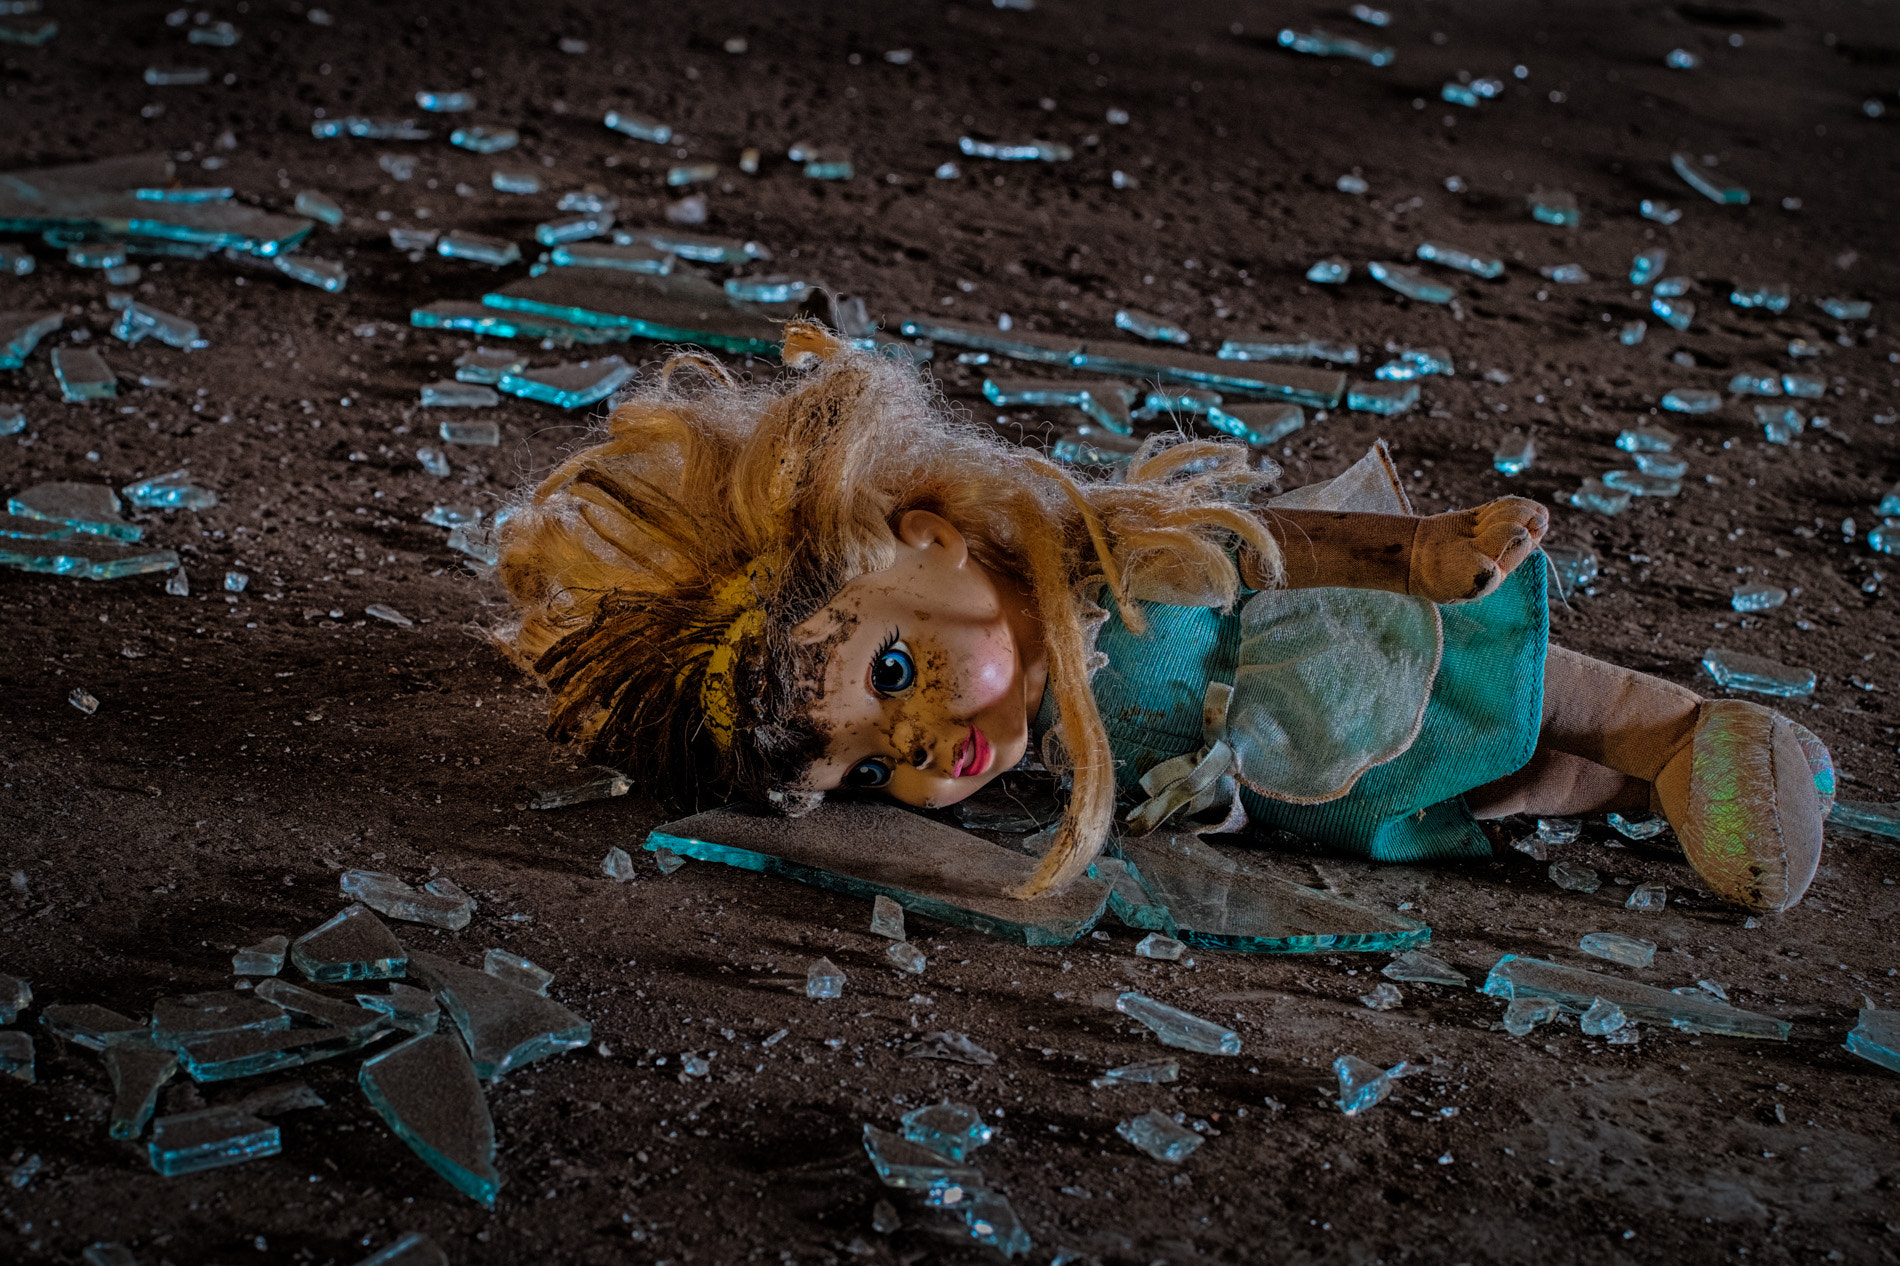 Photograph Abandoned Doll VI by Sébastien Trudeau-Dion on 500px